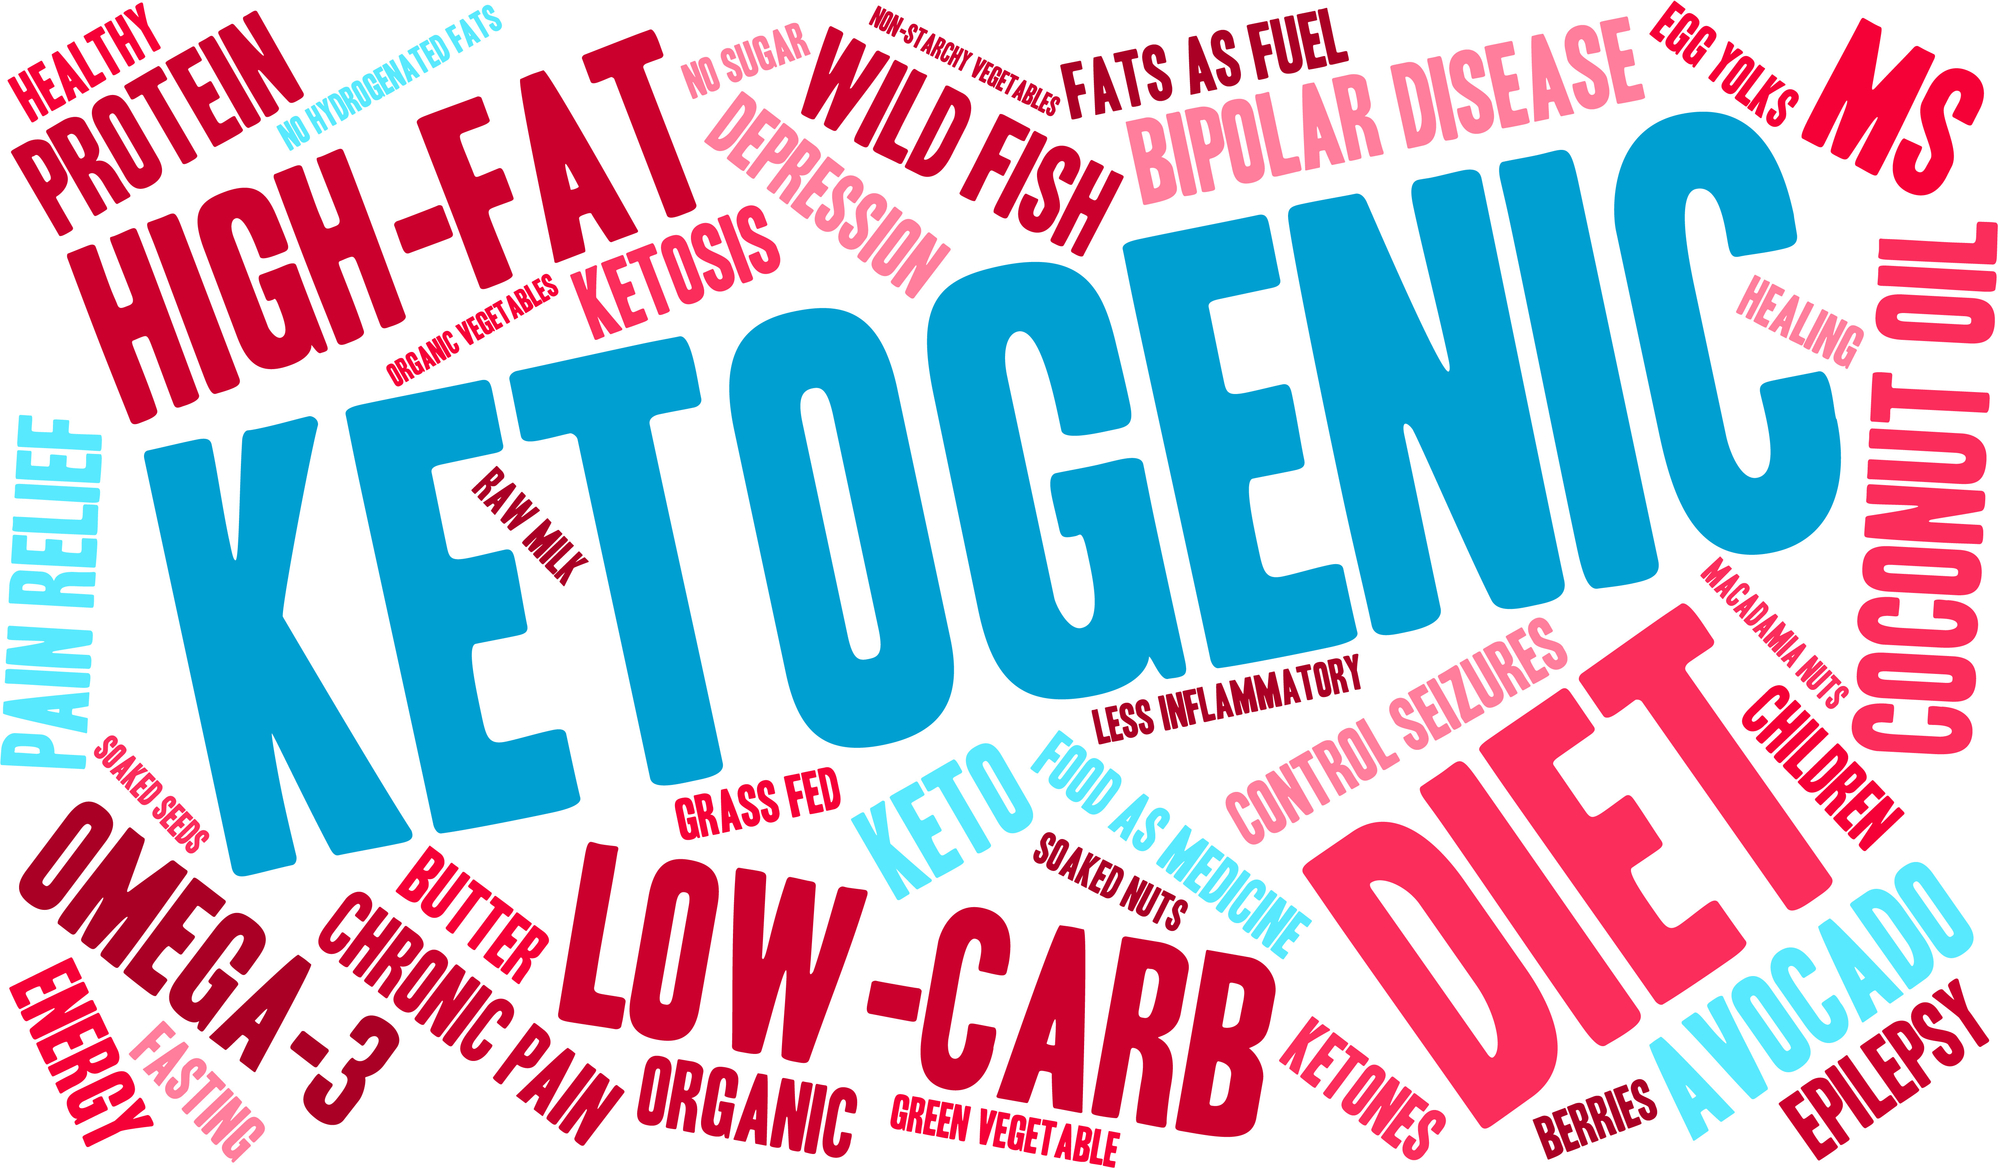 Keto diet word cloud - Pruvit Keto OS. Should You Try These Products?